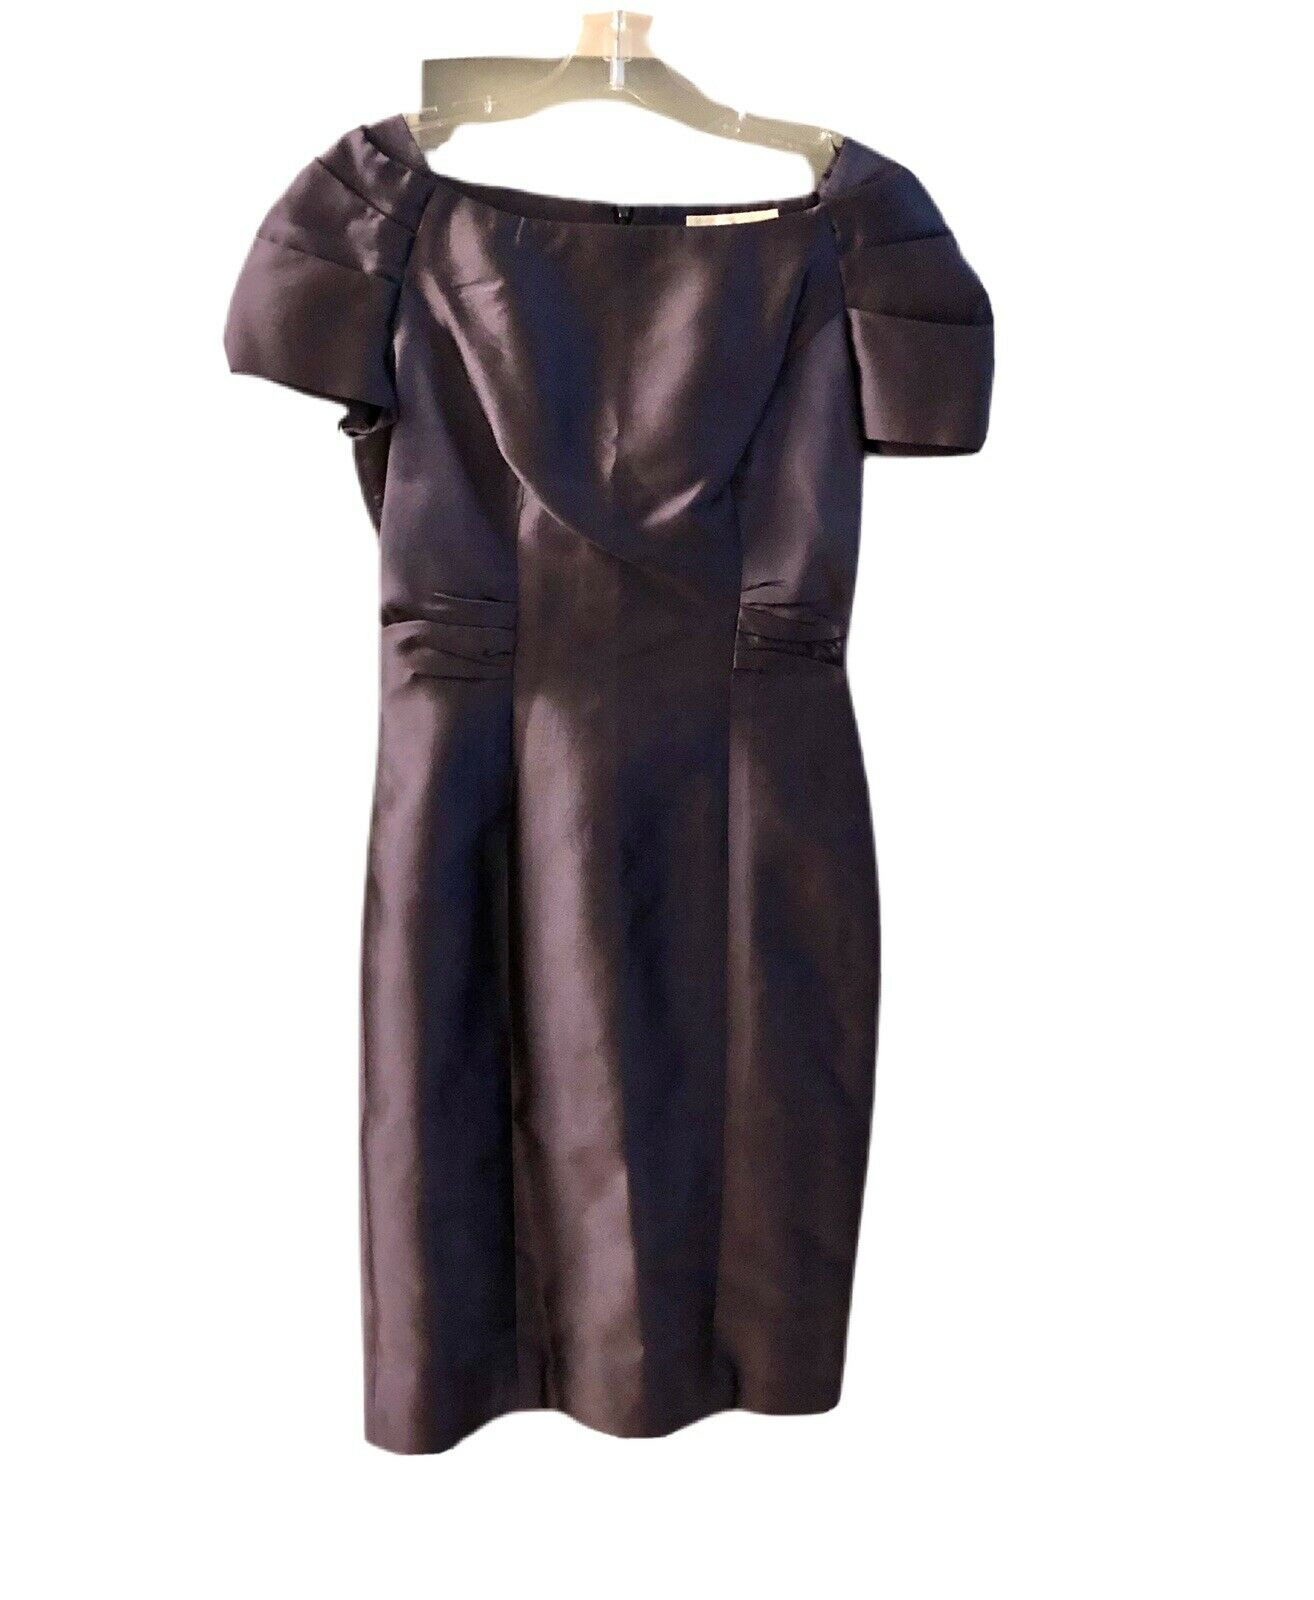 Maria Coca dress designed Spanish for parties, blue with shawl size 8